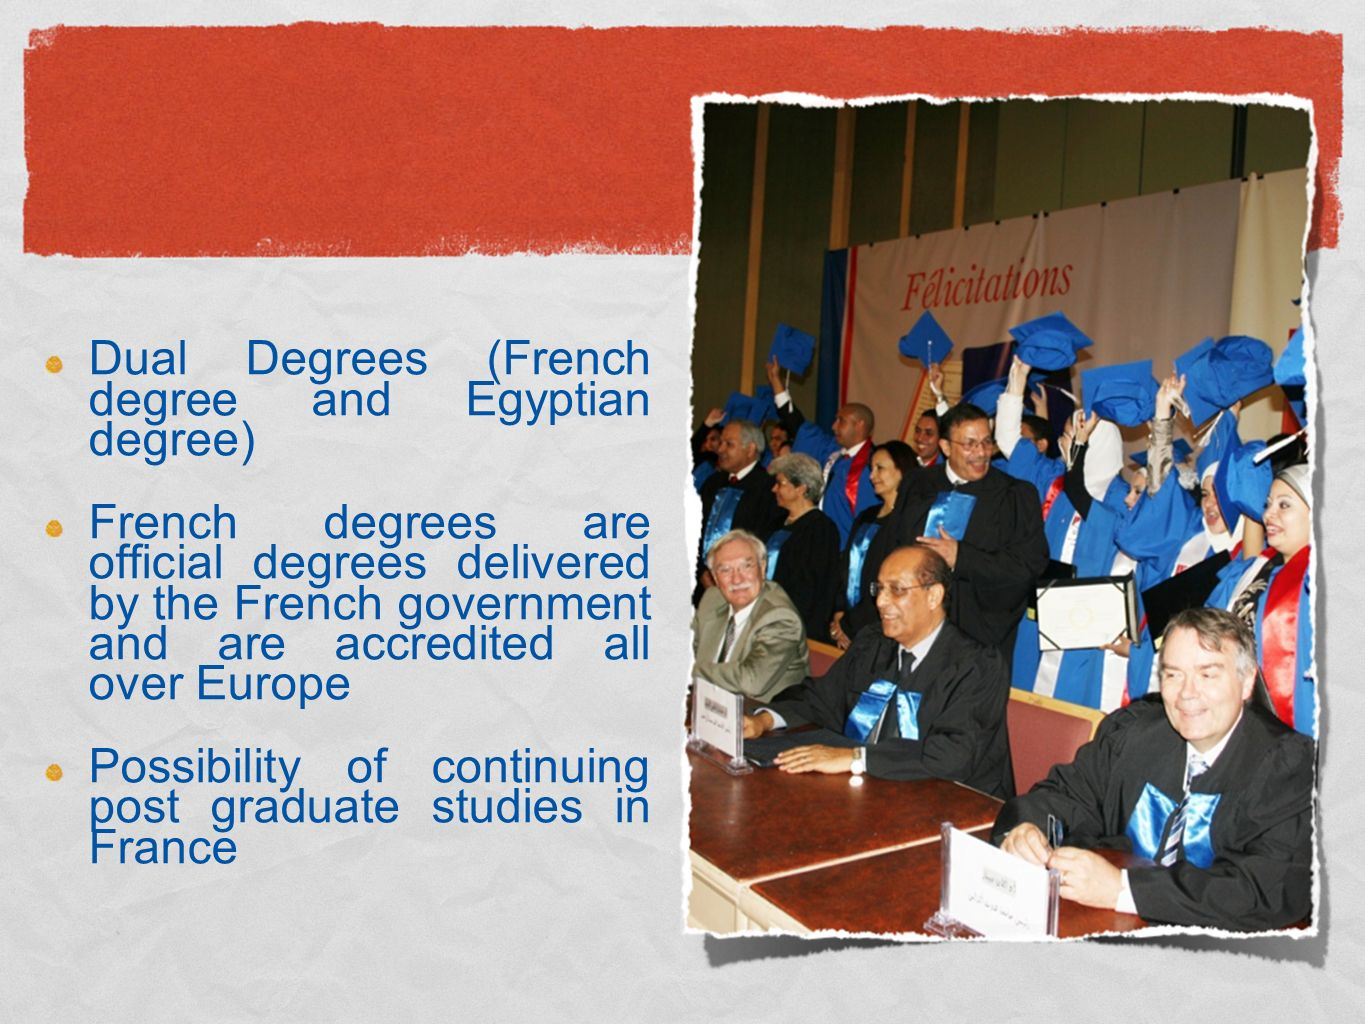 Dual Degrees (French degree and Egyptian degree) French degrees are official degrees delivered by the French government and are accredited all over Europe Possibility of continuing post graduate studies in France